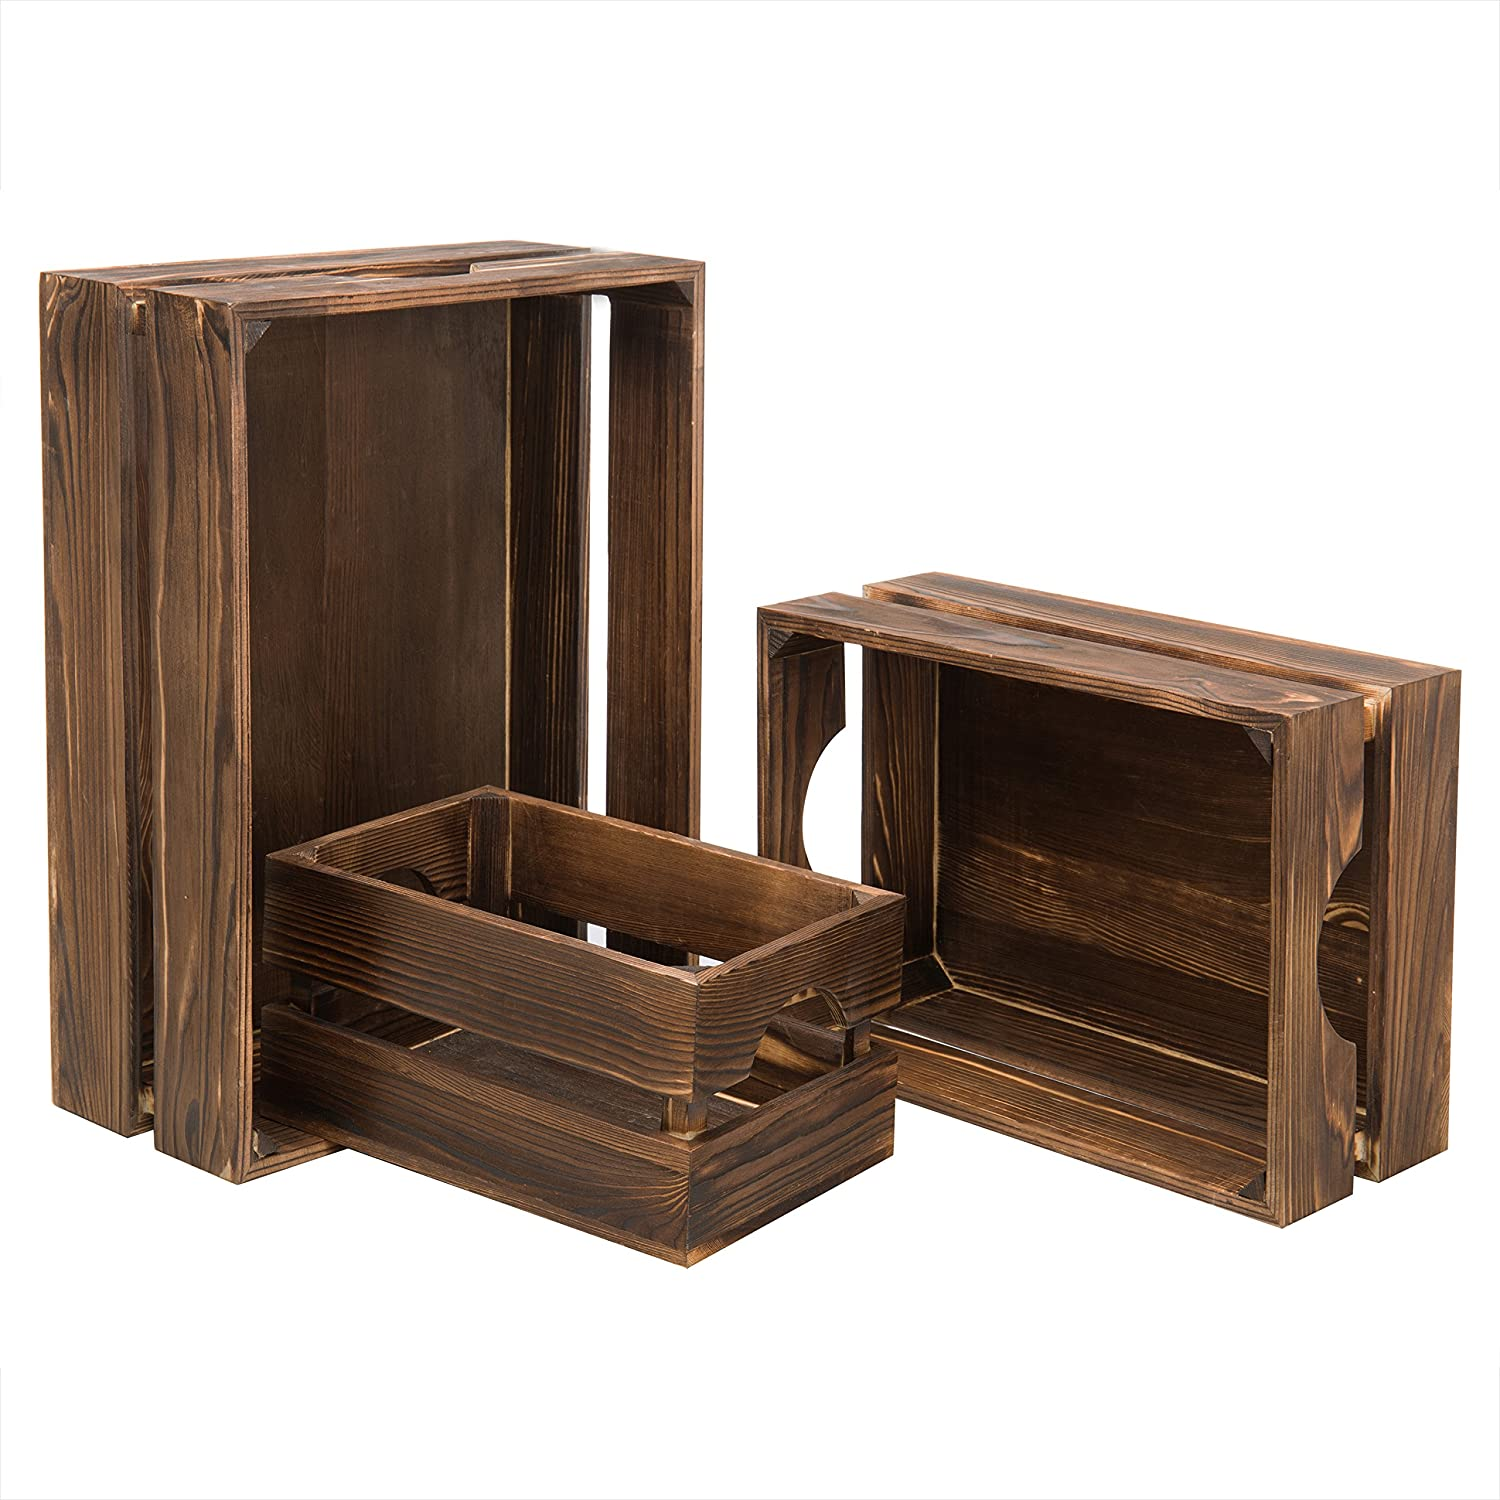 MyGift 16 x 12 Inch Nesting Rustic Brown Wood Storage & Accent Crates, Set of 3